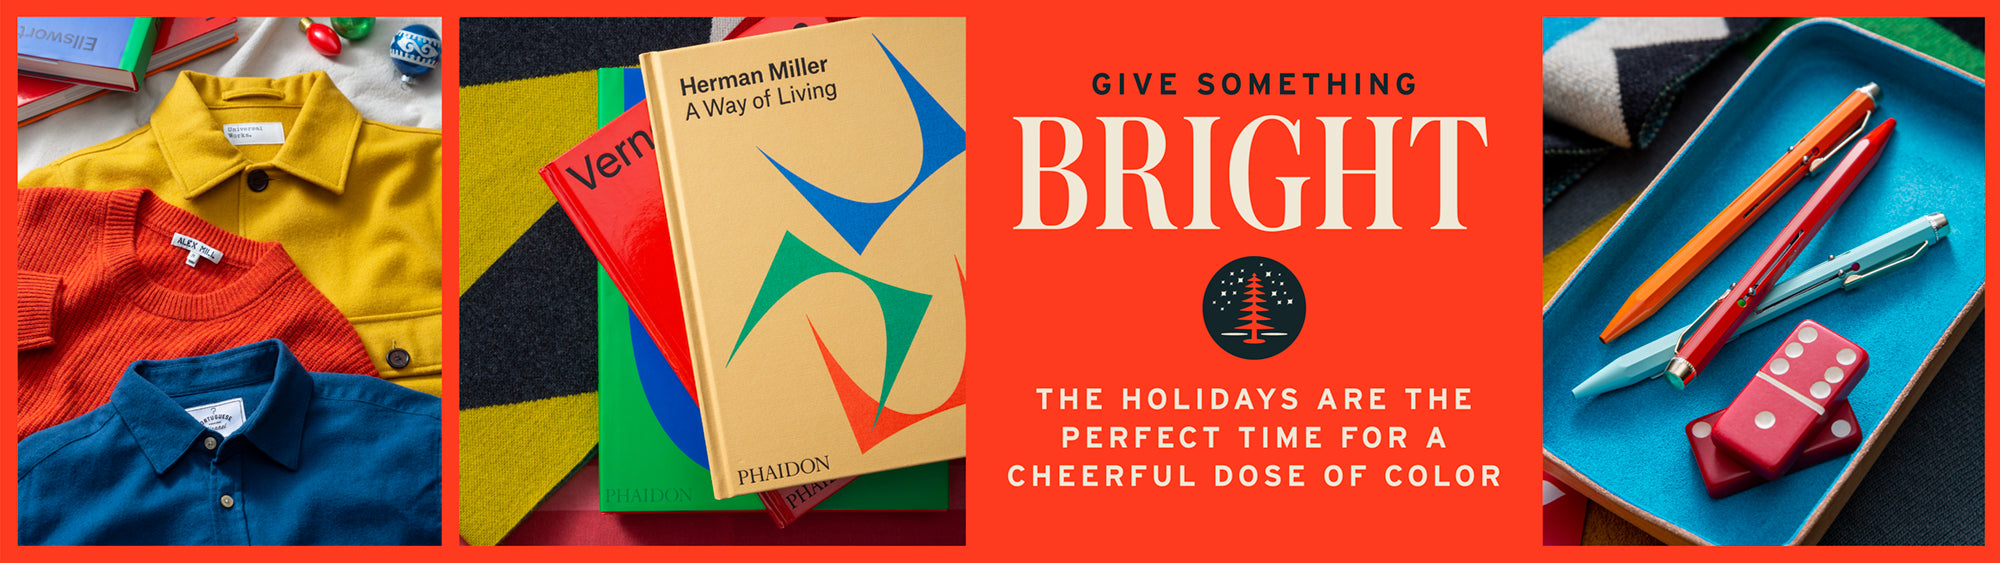 Gift Guide - Give Something Bright | STAG